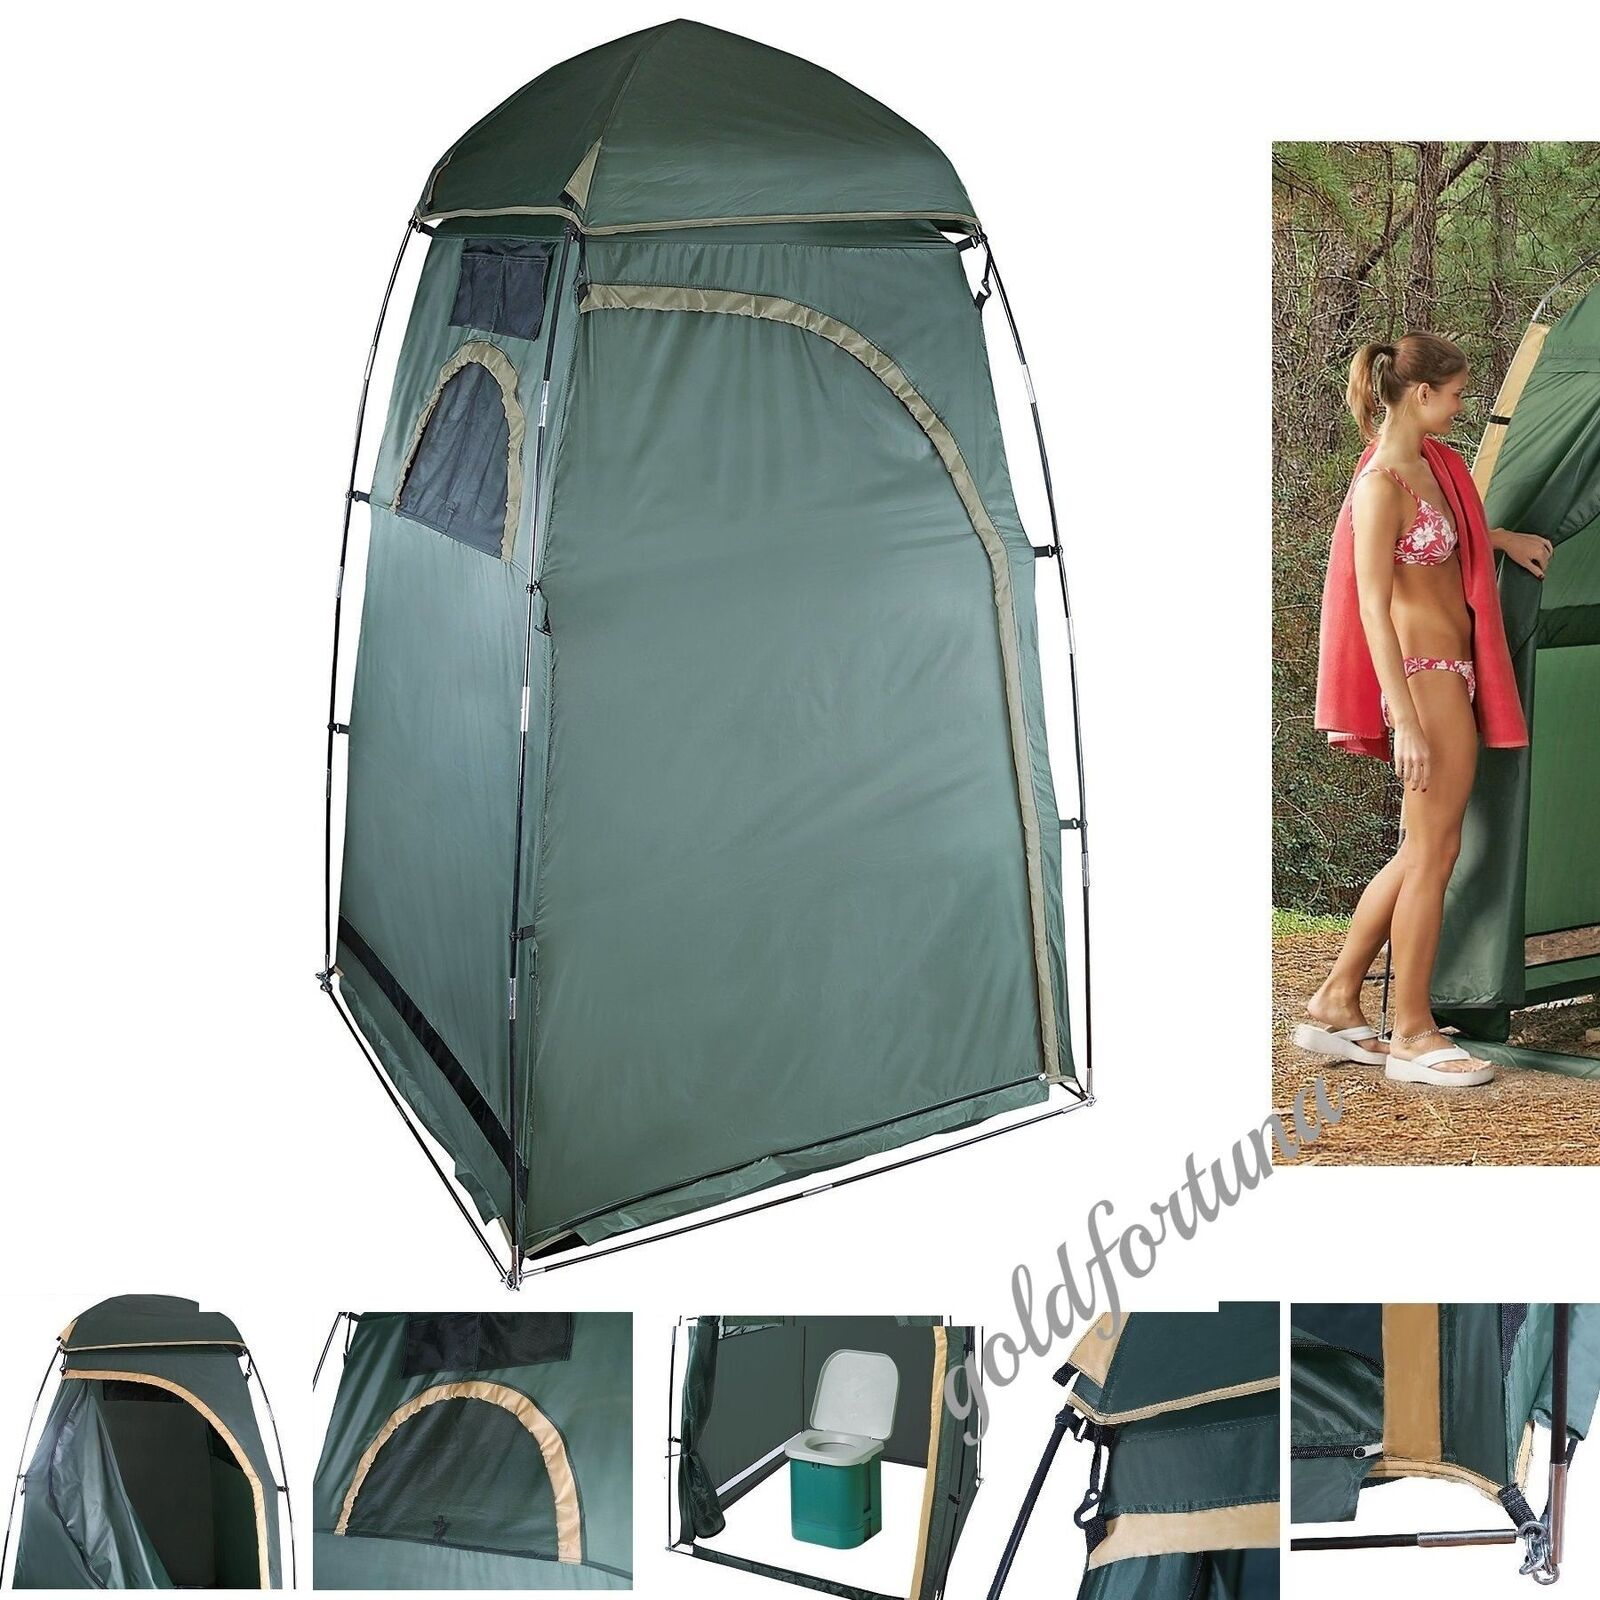 Camping Bathroom Tent Privacy Outdoor Shelter Portable Changing Room Toilet